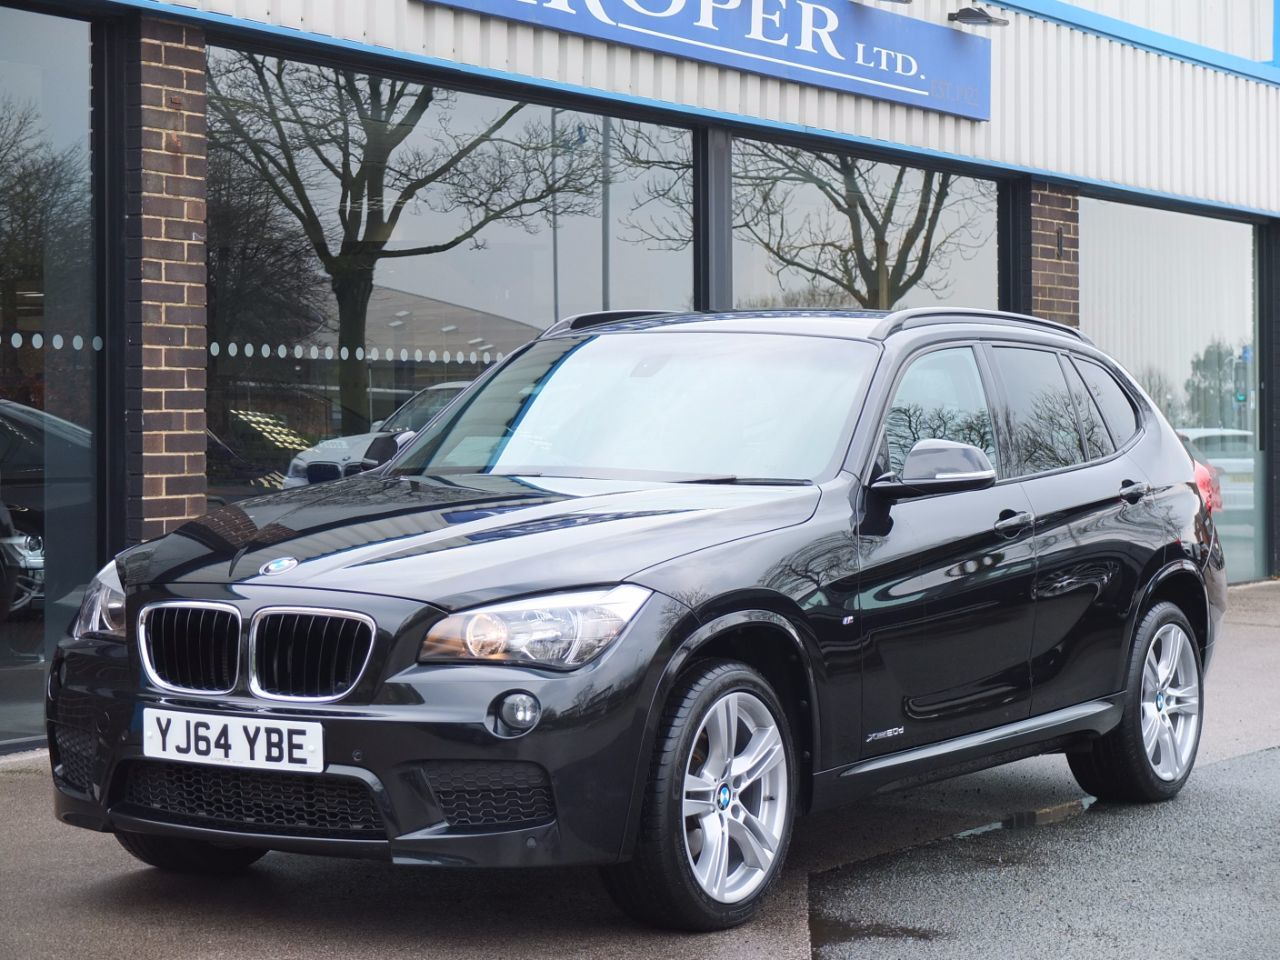 BMW X1 2.0 xDrive 20d M Sport Auto Estate Diesel Black Sapphire MetallicBMW X1 2.0 xDrive 20d M Sport Auto Estate Diesel Black Sapphire Metallic at fa Roper Ltd Bradford